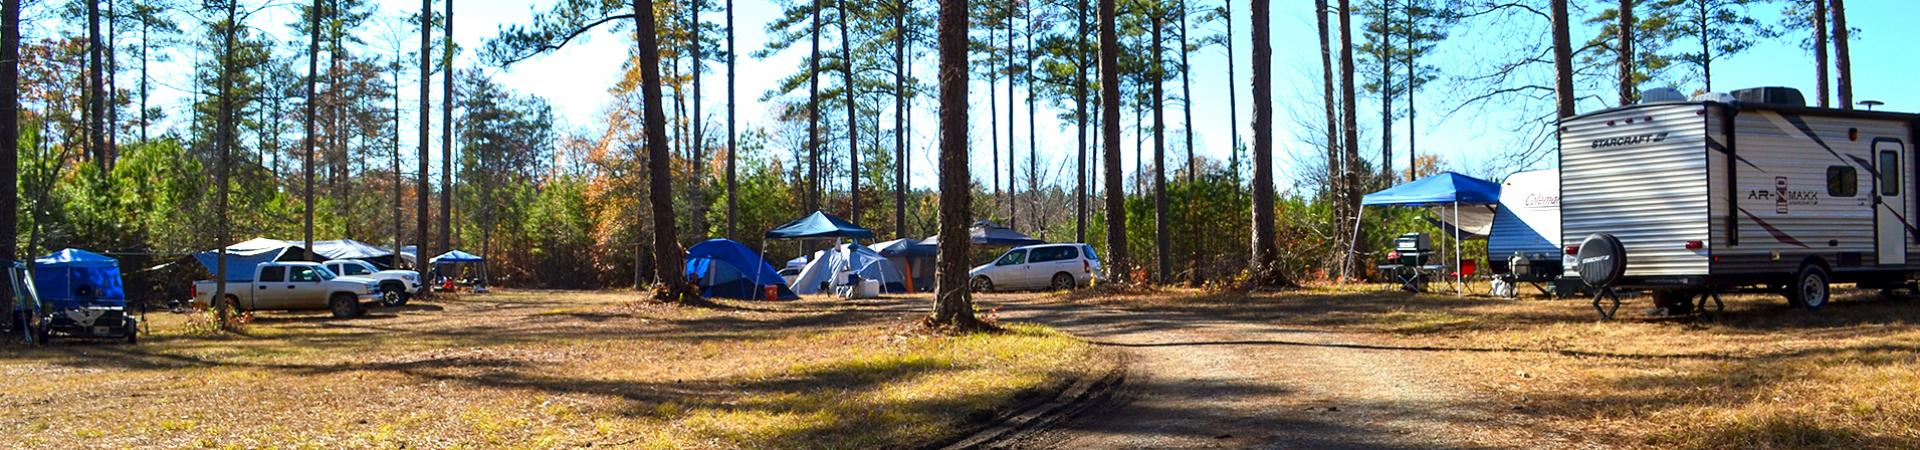 campgrounds at Berry College Wildlife Management Areas